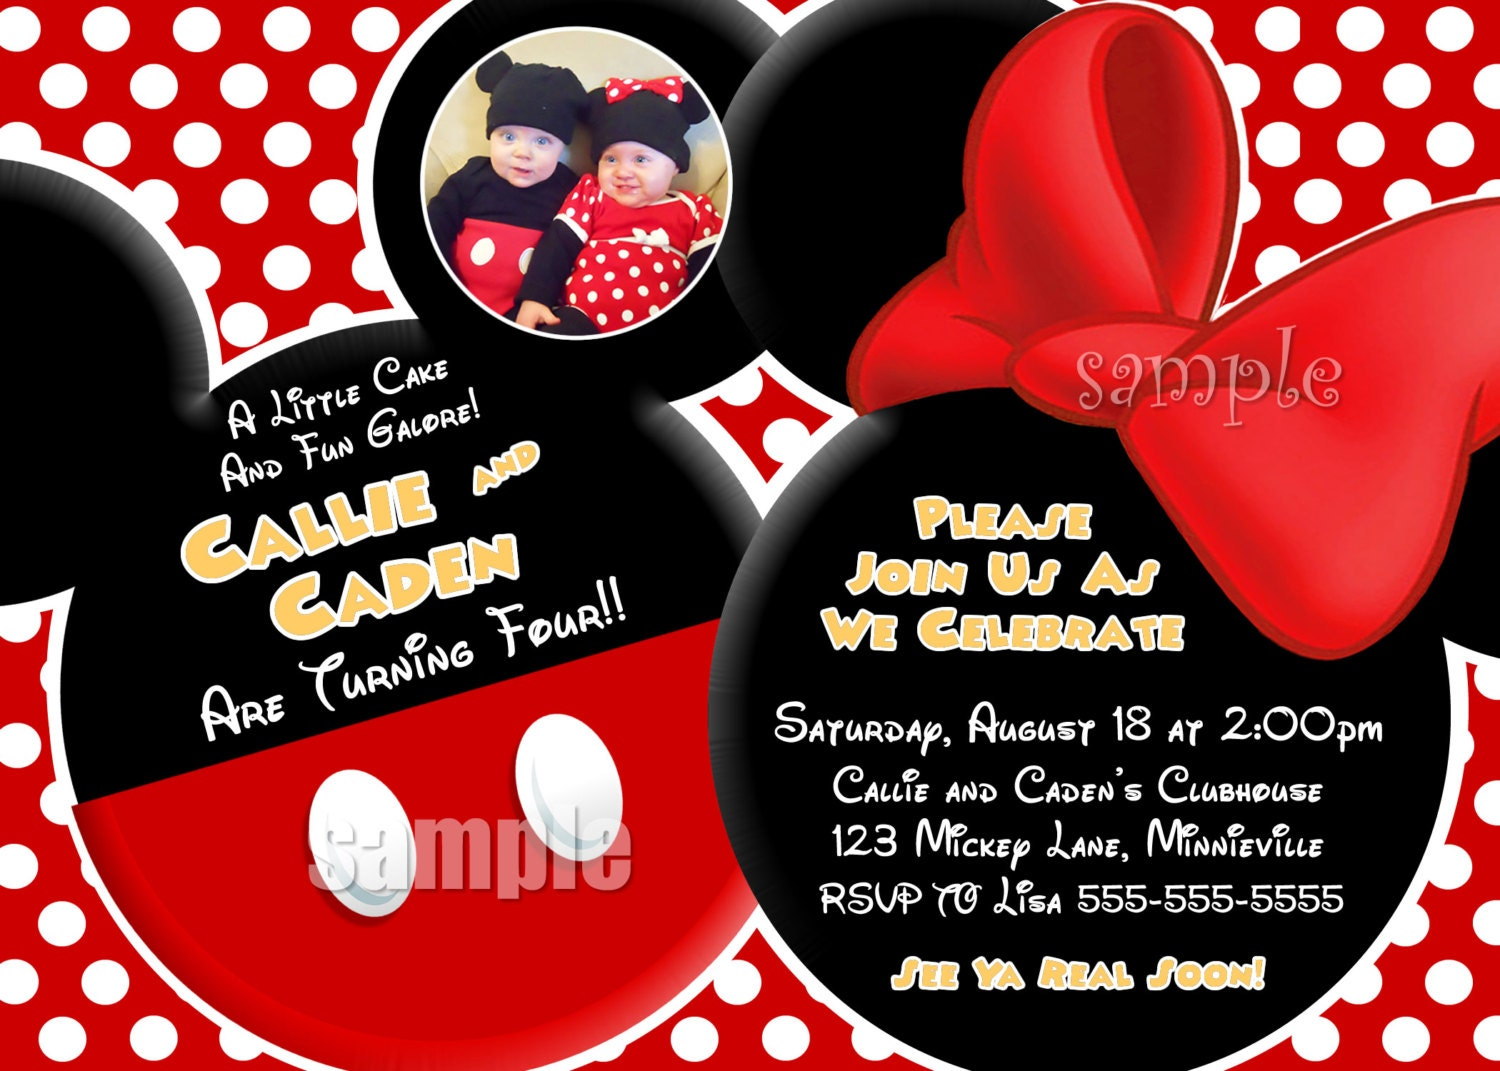 Mickey Mouse Clubhouse Invites is amazing invitations ideas